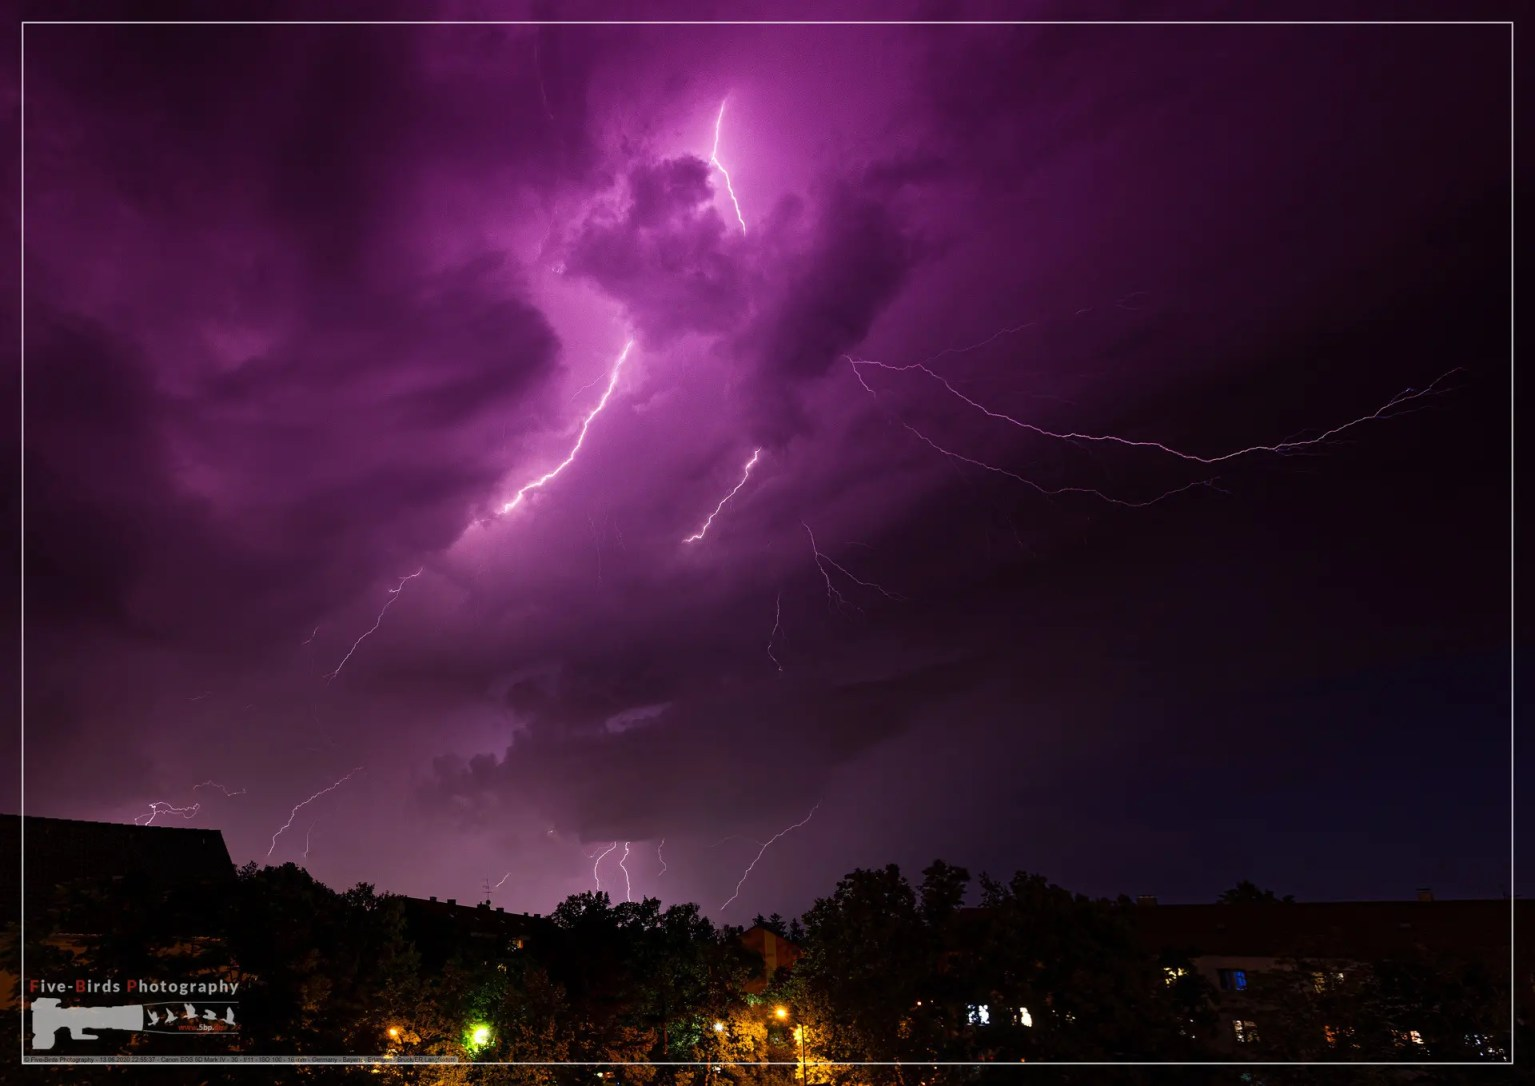 Thunderstorm at evening above the city of Erlangen, Bavaria, Germany